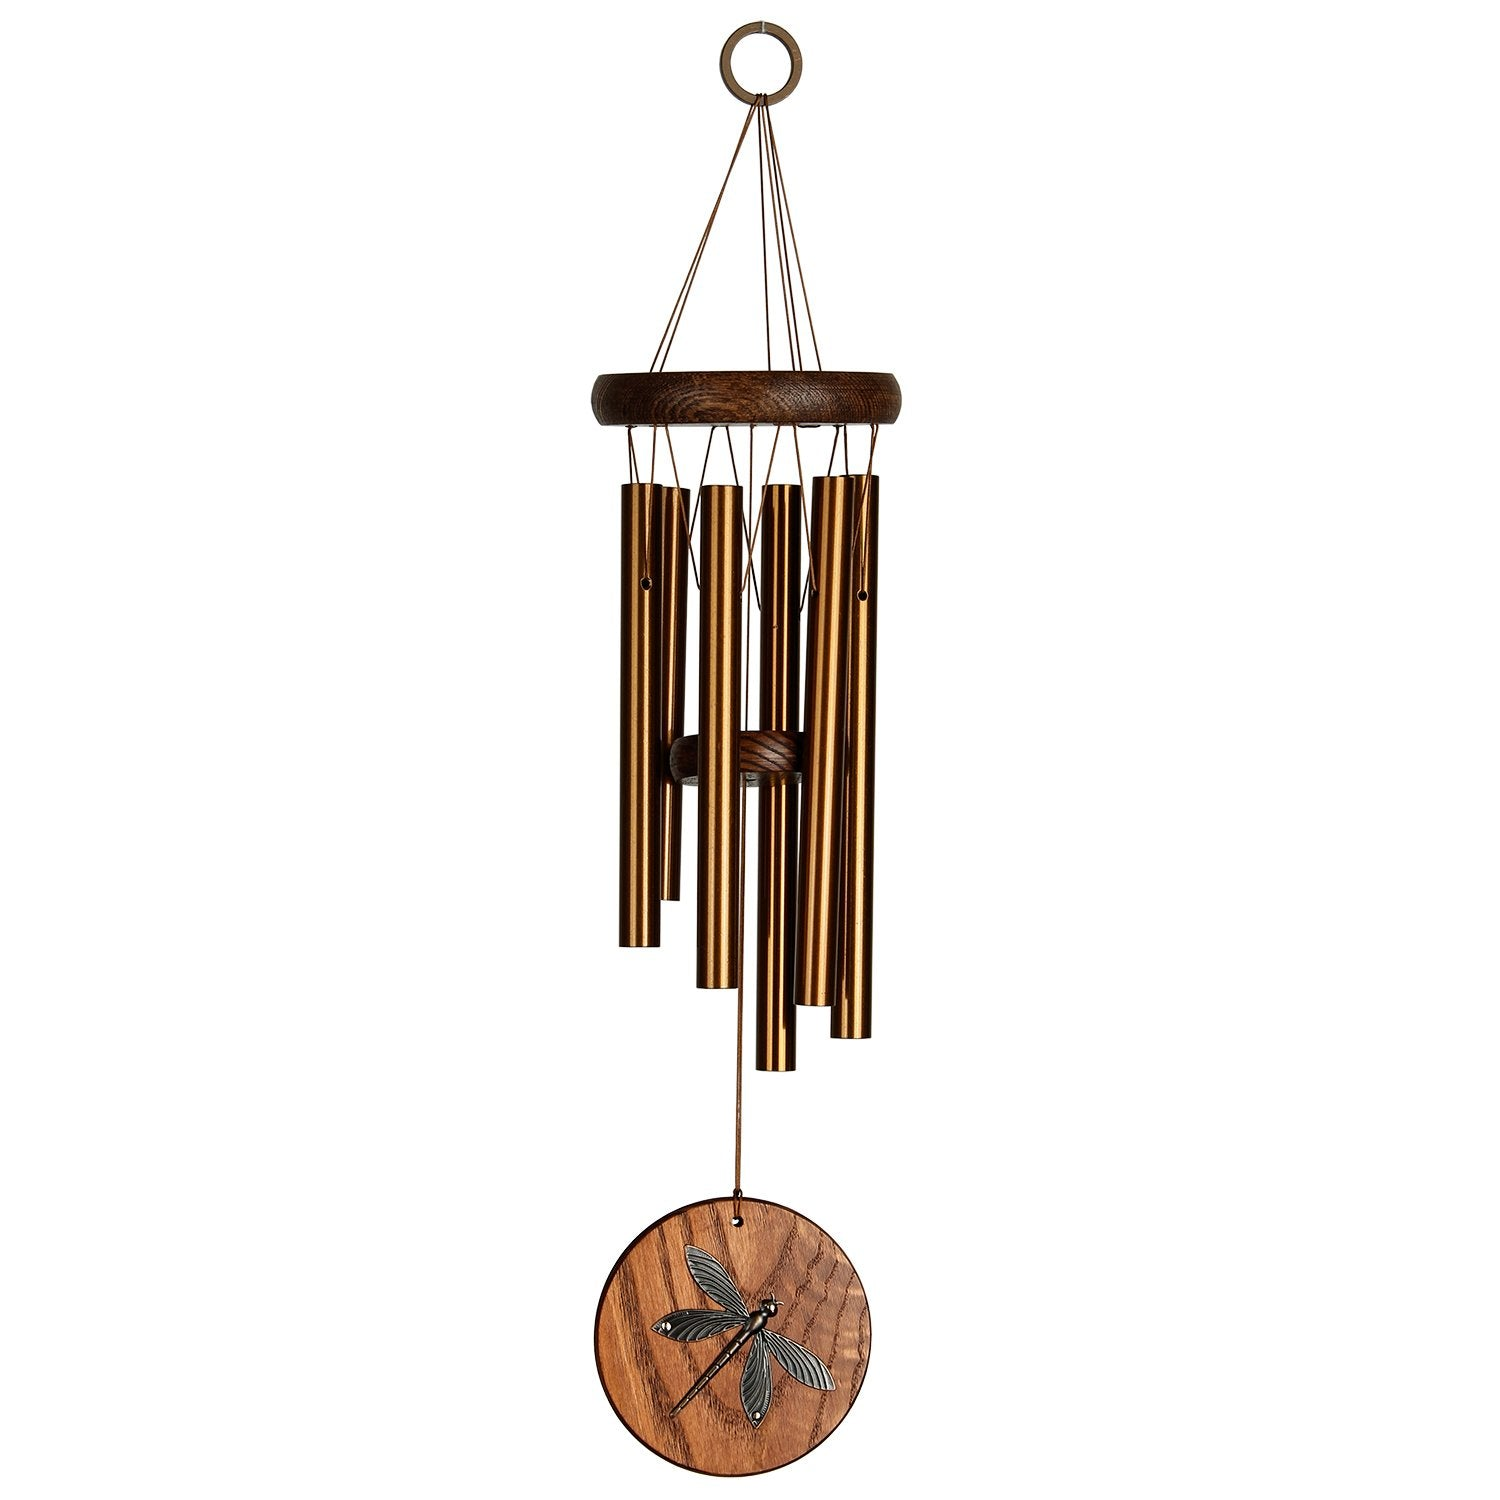 Woodstock Habitats Chime - Teak, Dragonfly full product image